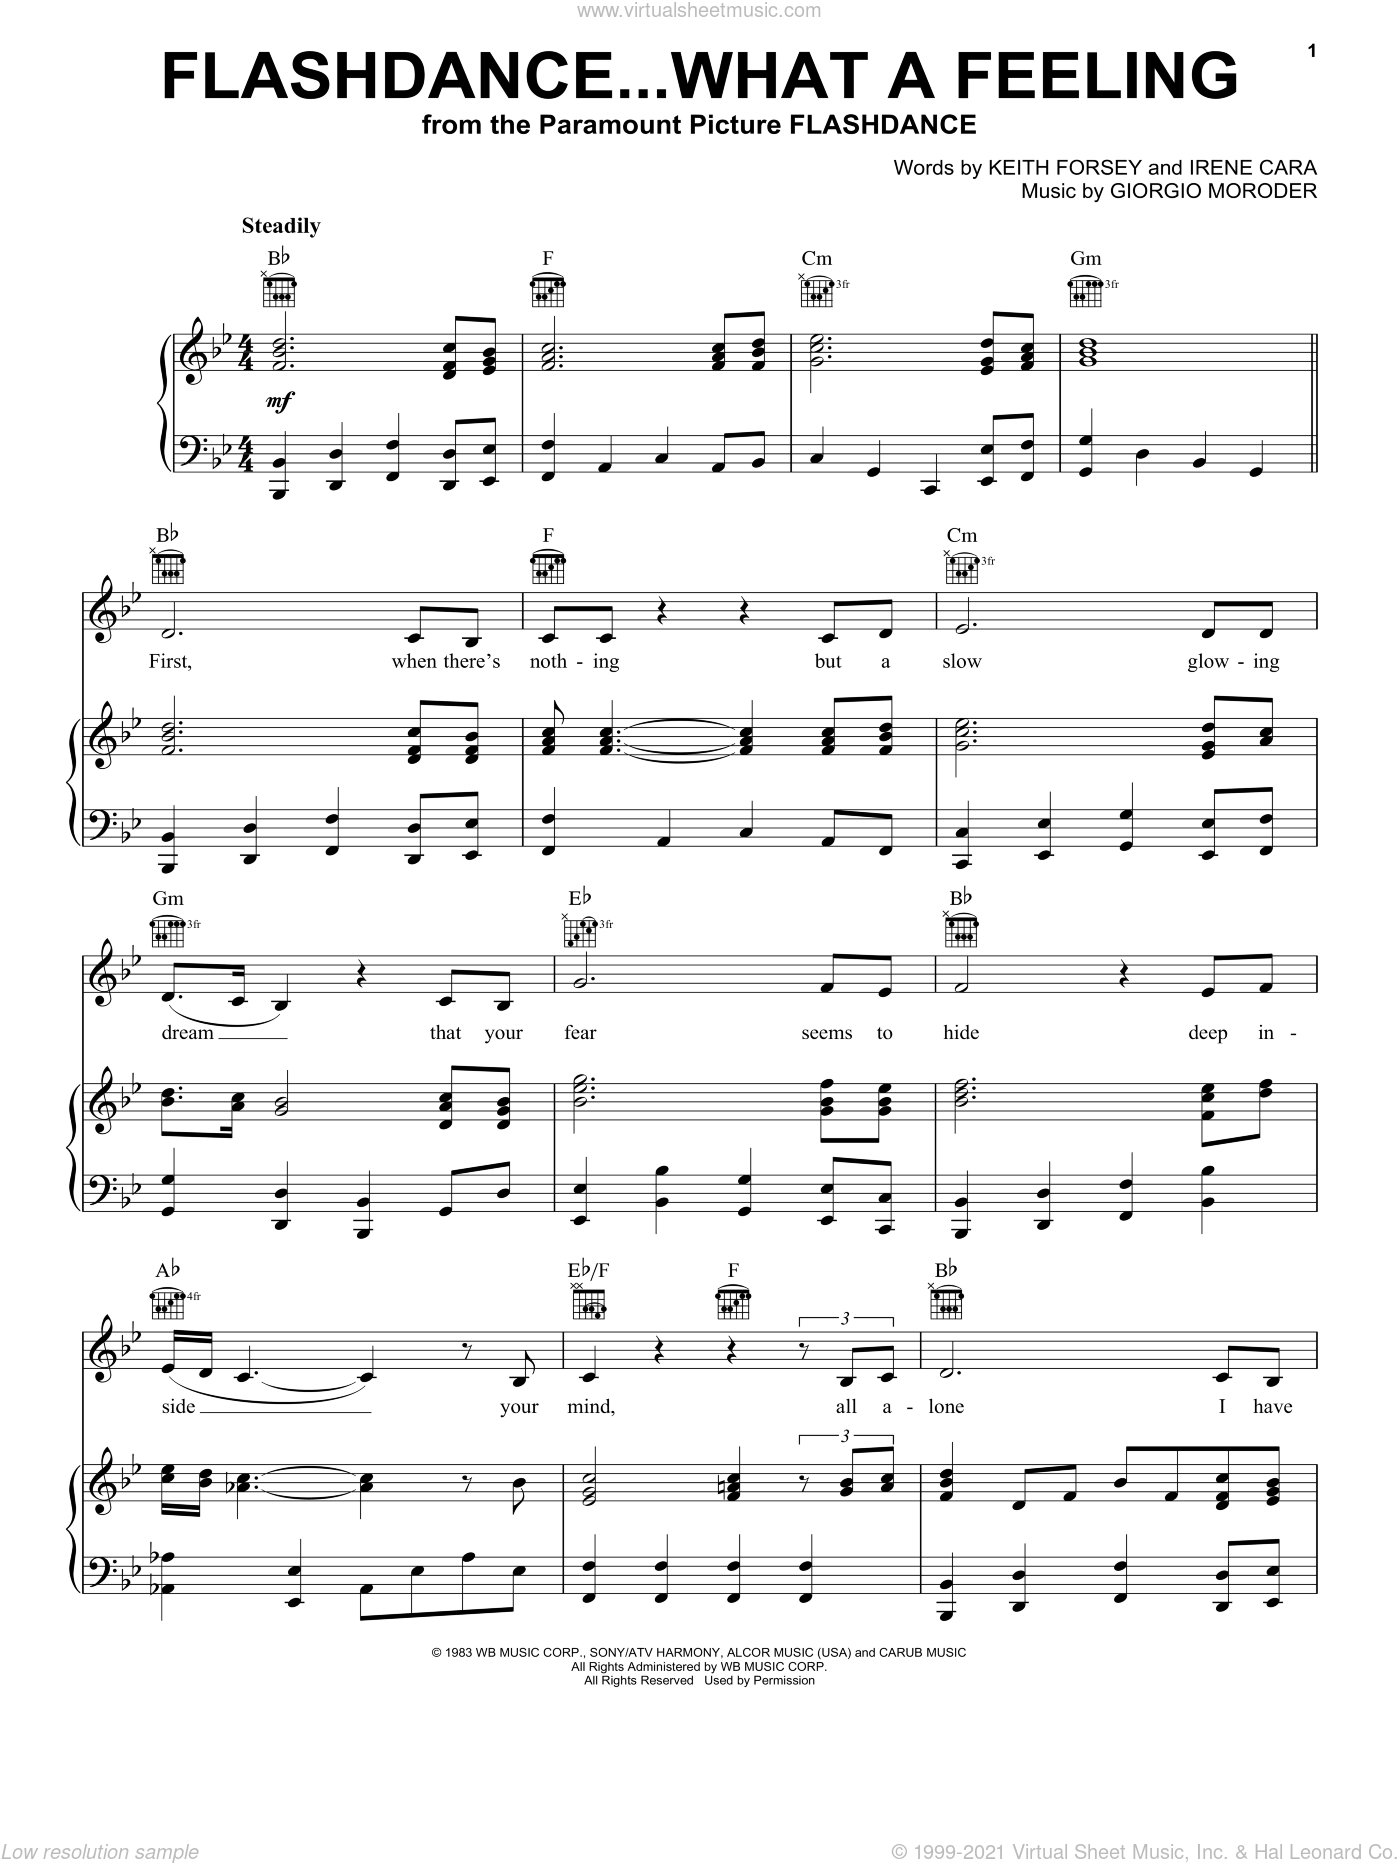 Flashdance...What A Feeling sheet music for voice, piano or guitar by Irene Cara, Giorgio Moroder and Keith Forsey, intermediate. Score Image Preview.